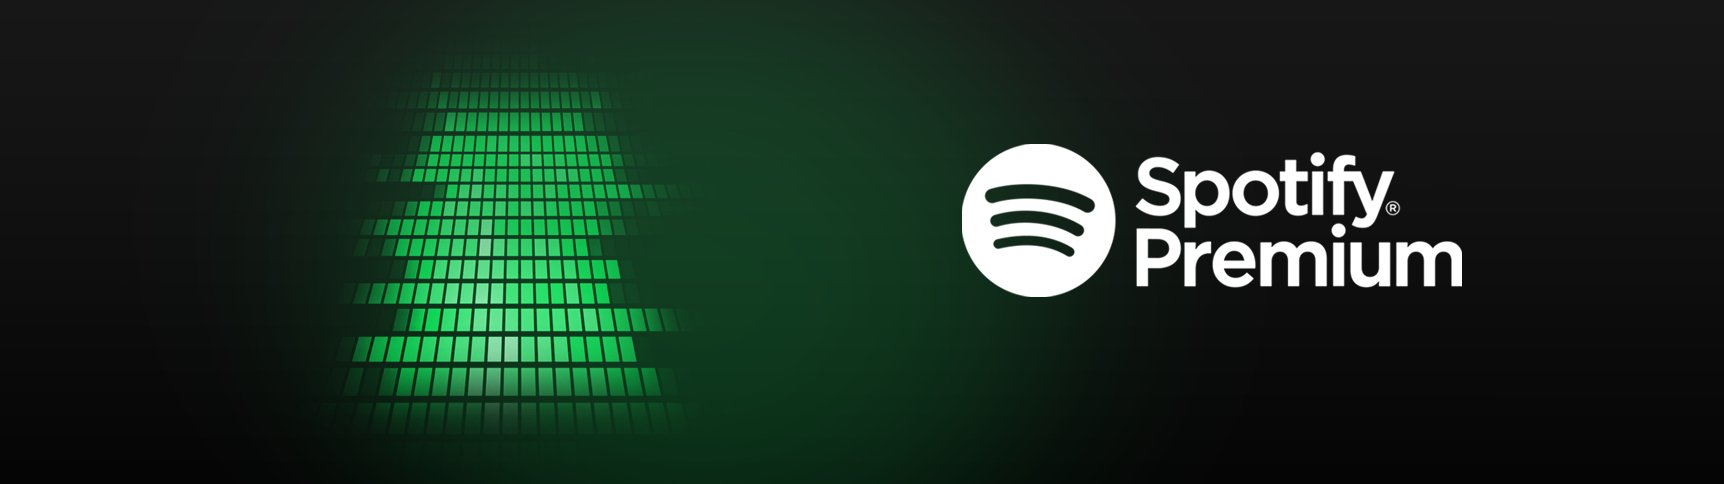 spotify and xbox leak